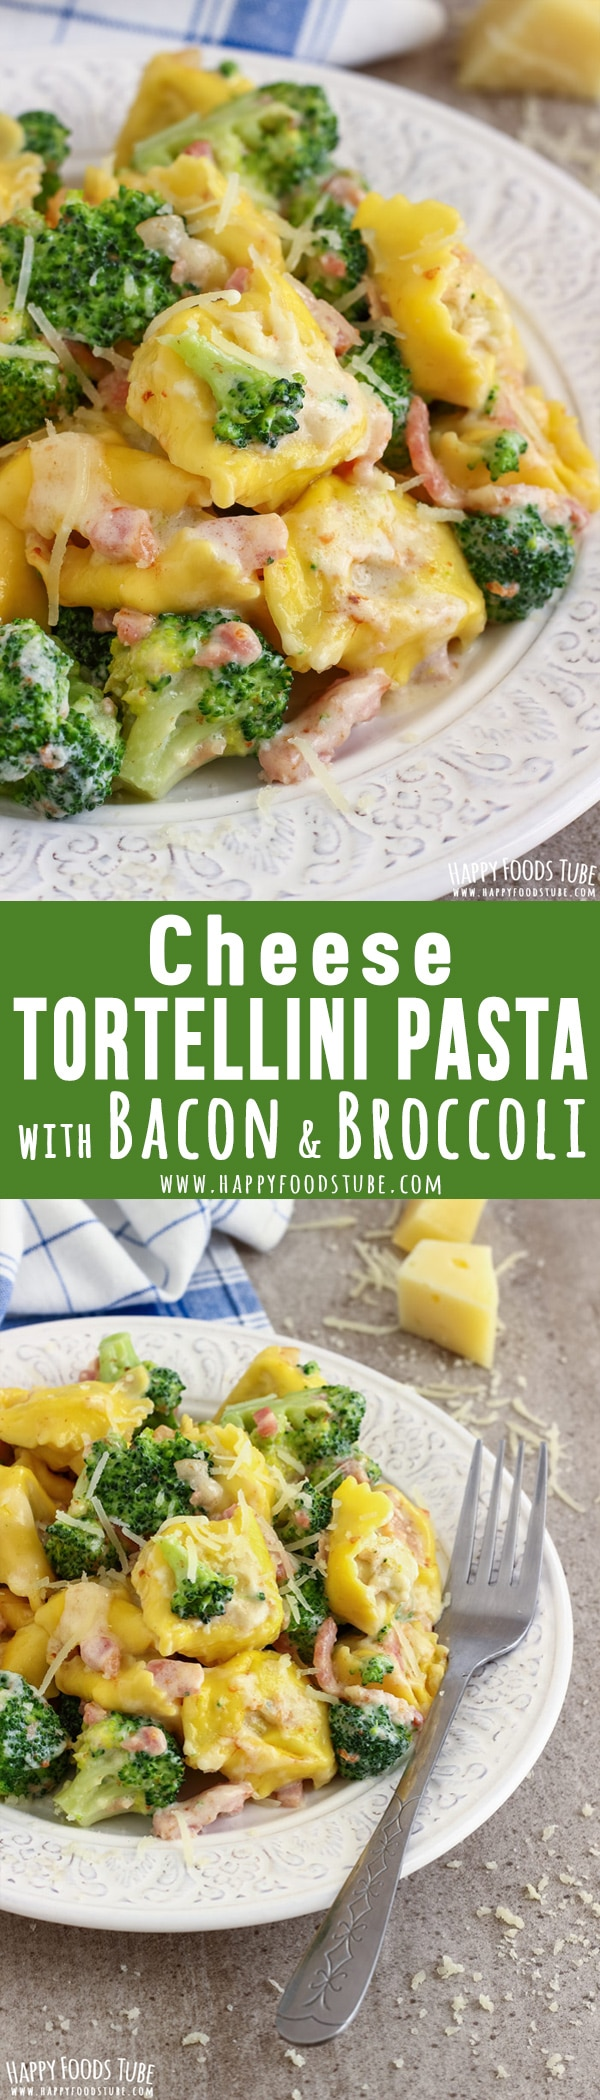 This cheese tortellini pasta with broccoli and bacon recipe is a quick weeknight dinner idea! All you need is 5-ingredients and 20-minutes. Easy to make Italian food. #tortellini #pasta #broccoli #bacon #recipe #italianfood #cooking #lunch #dinner #cheese